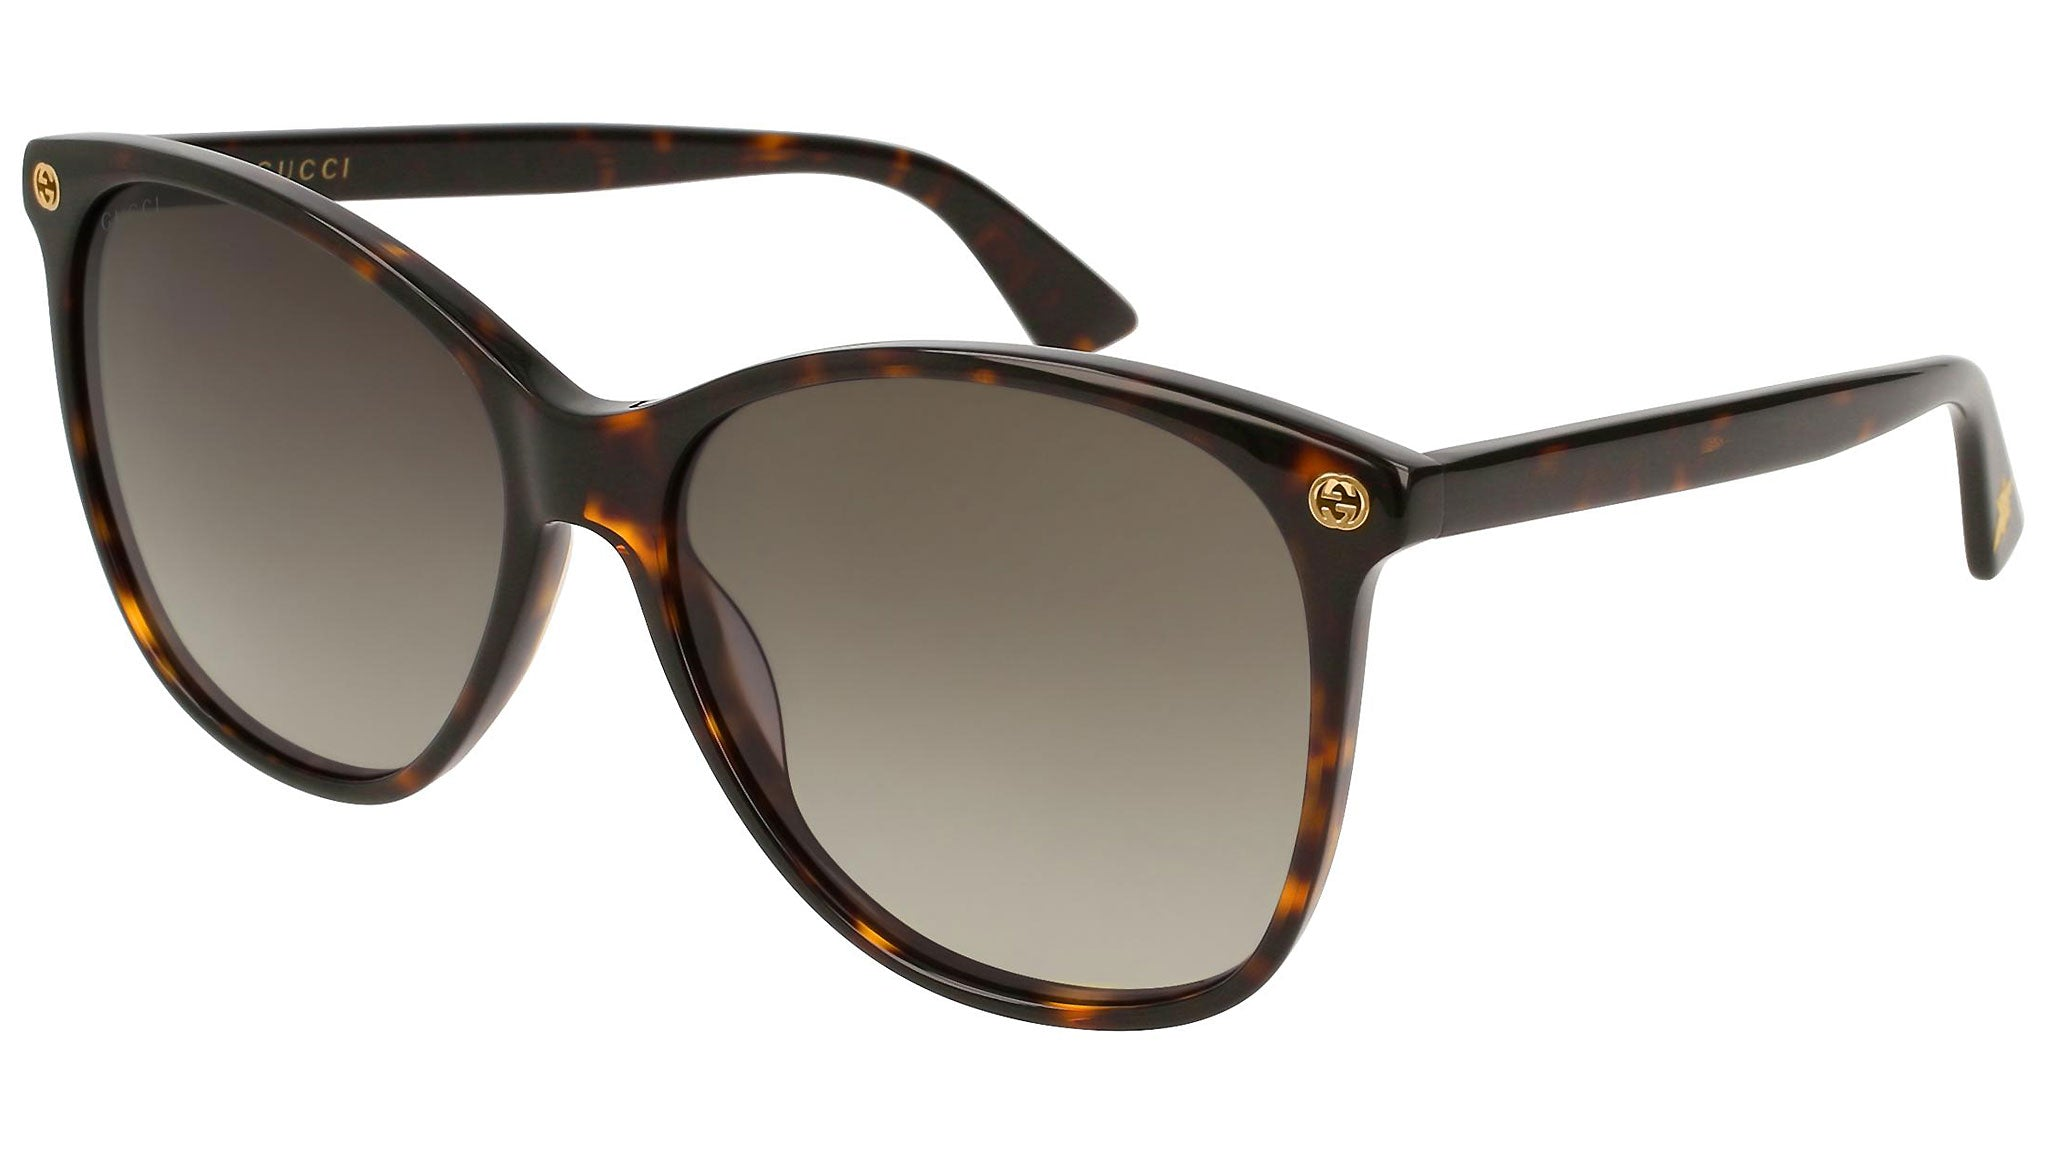 GG0024S dark havana and brown